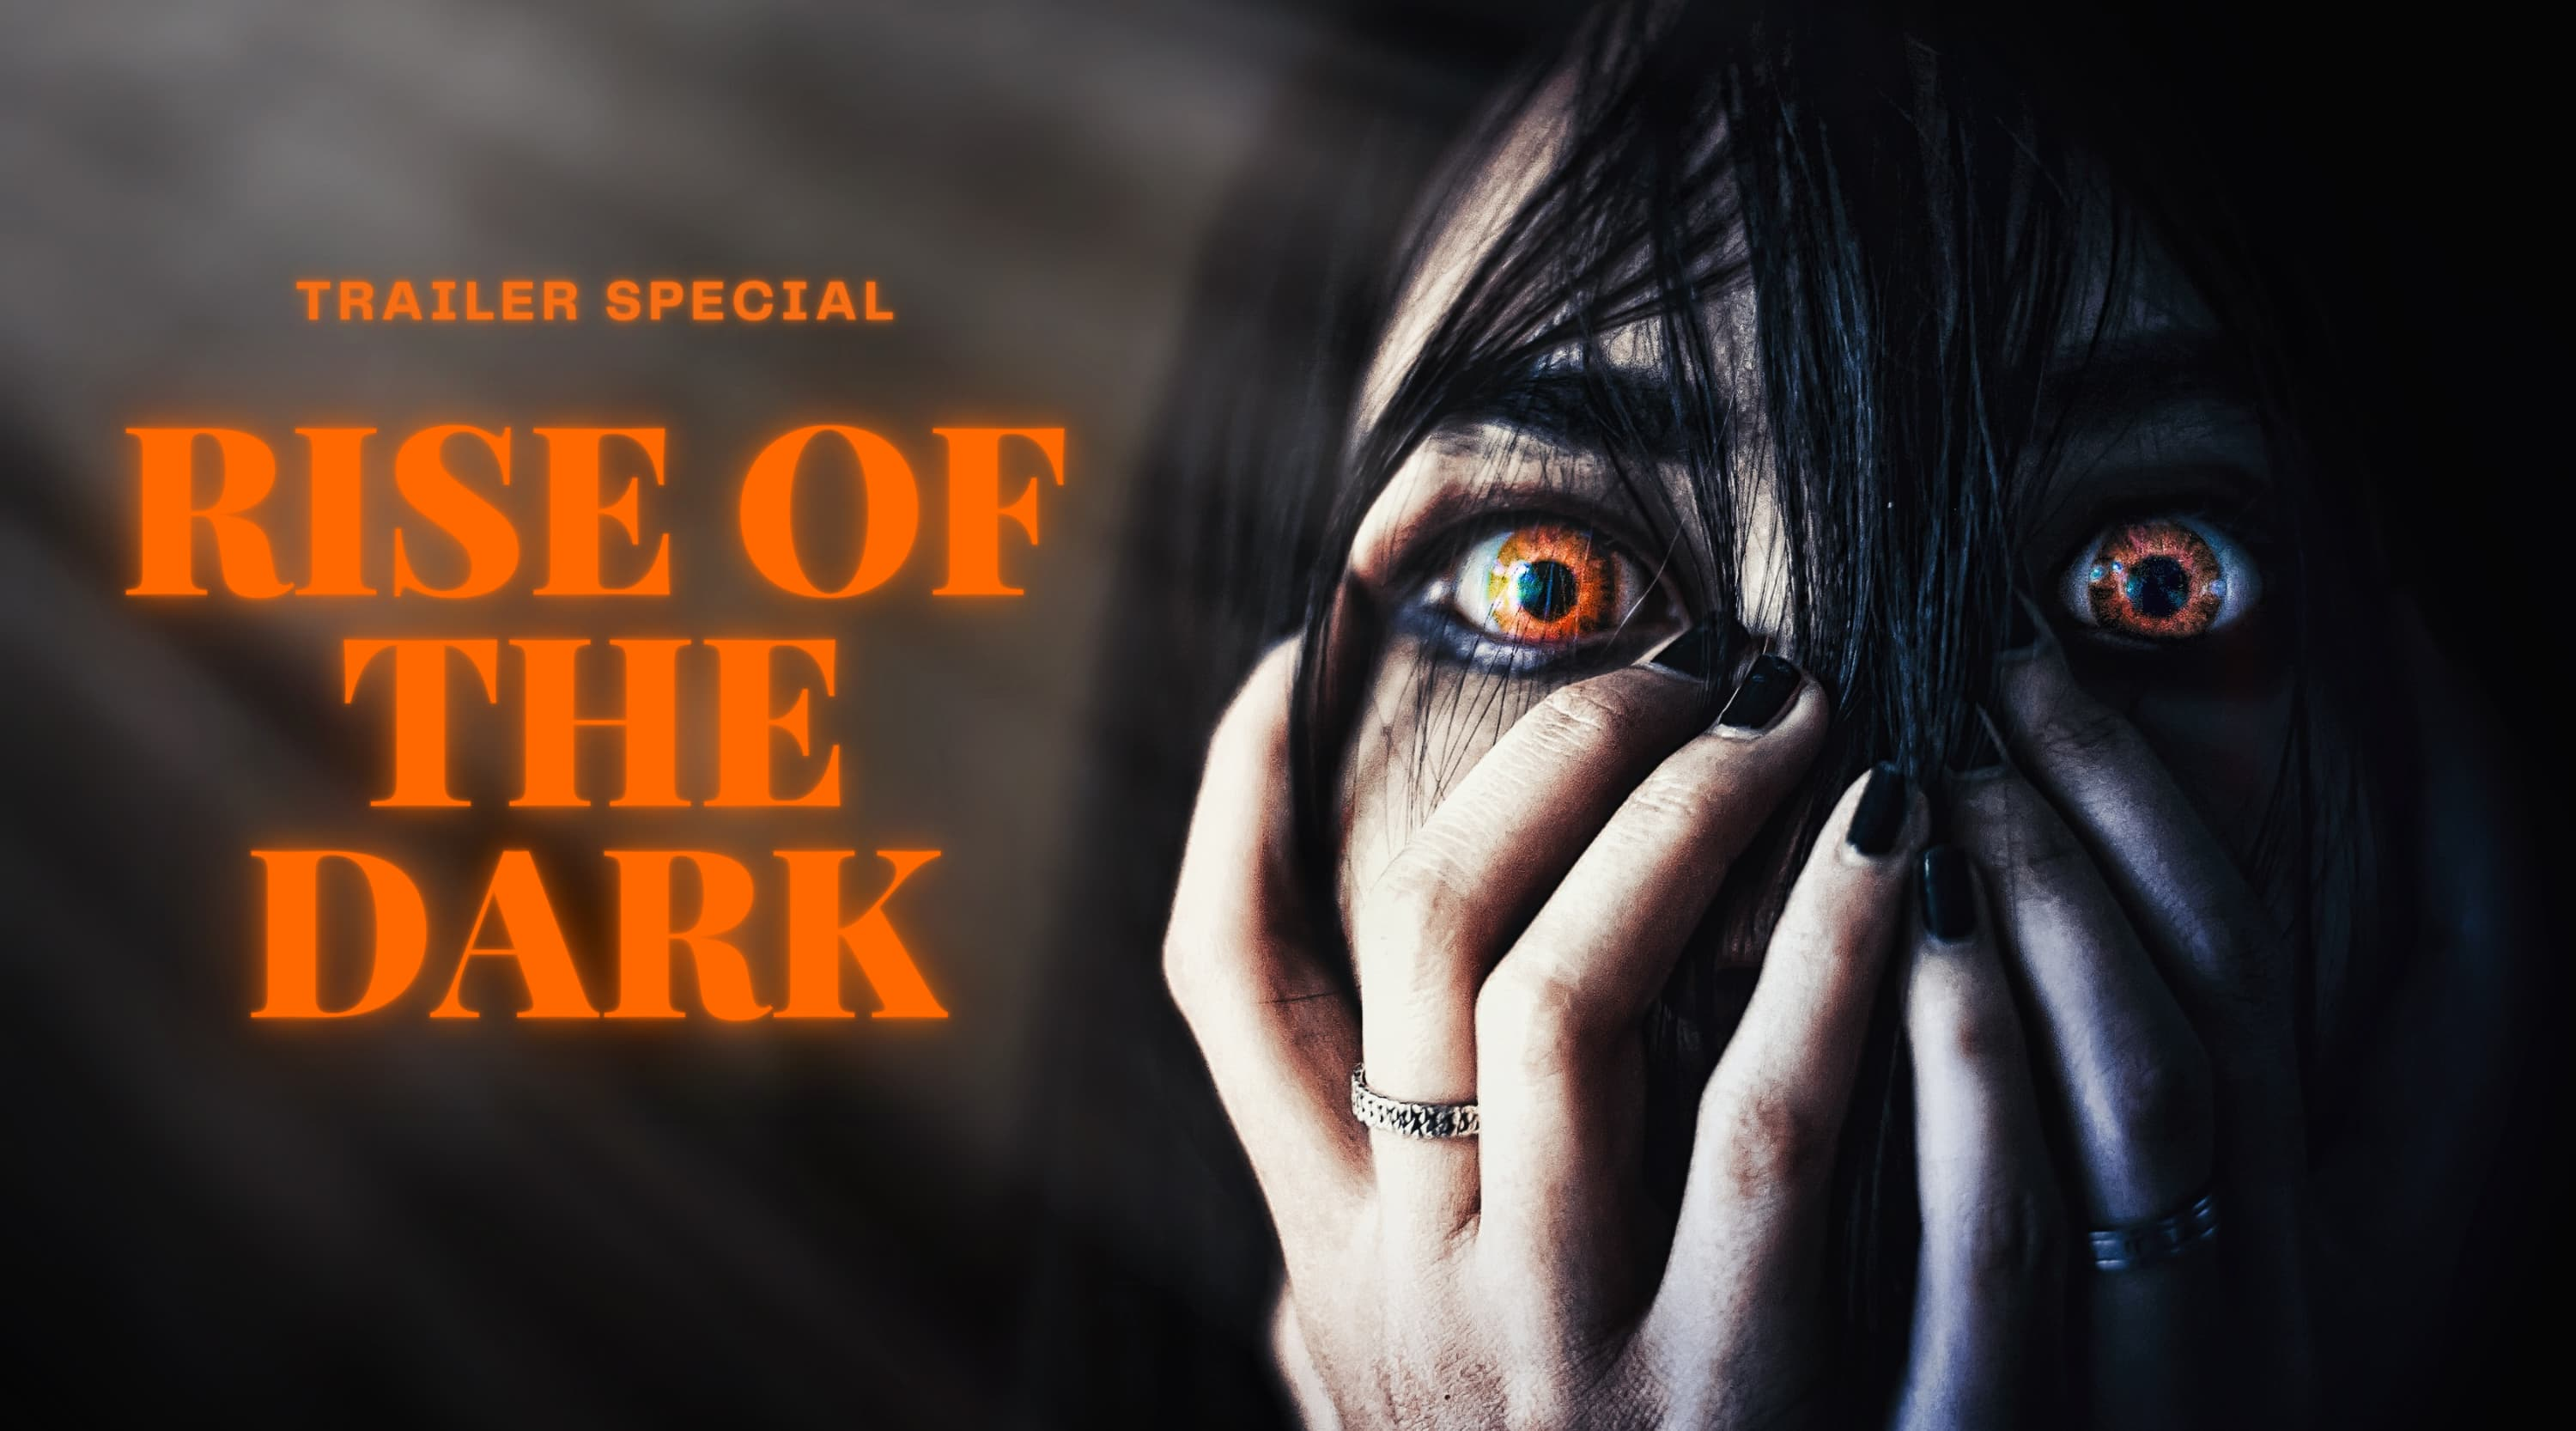 Trailer Special: Rise Of The Dark